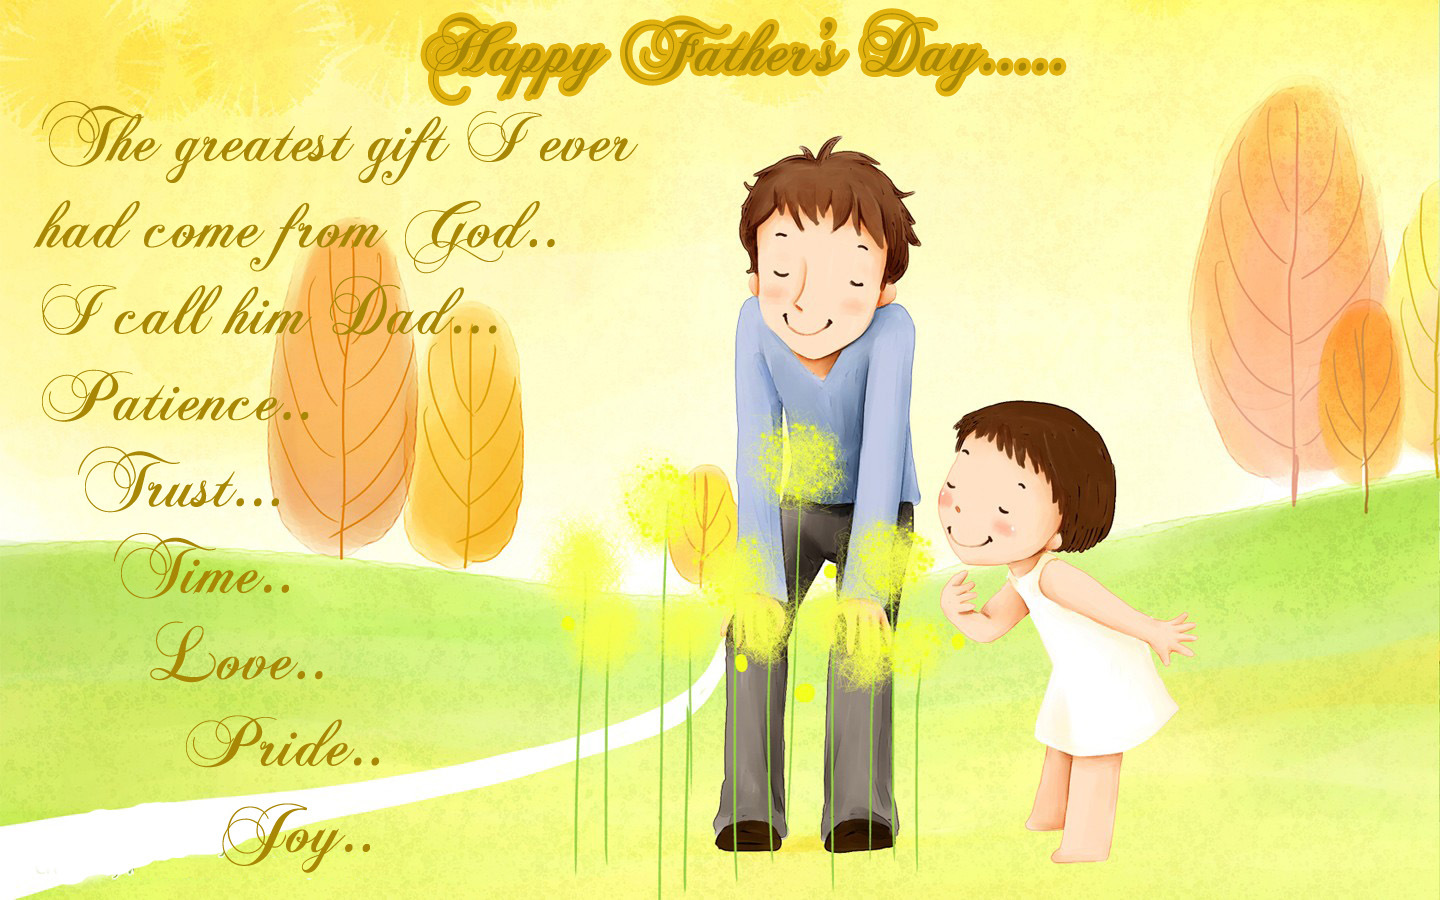 Happy Fathers Day Greetings From daughter